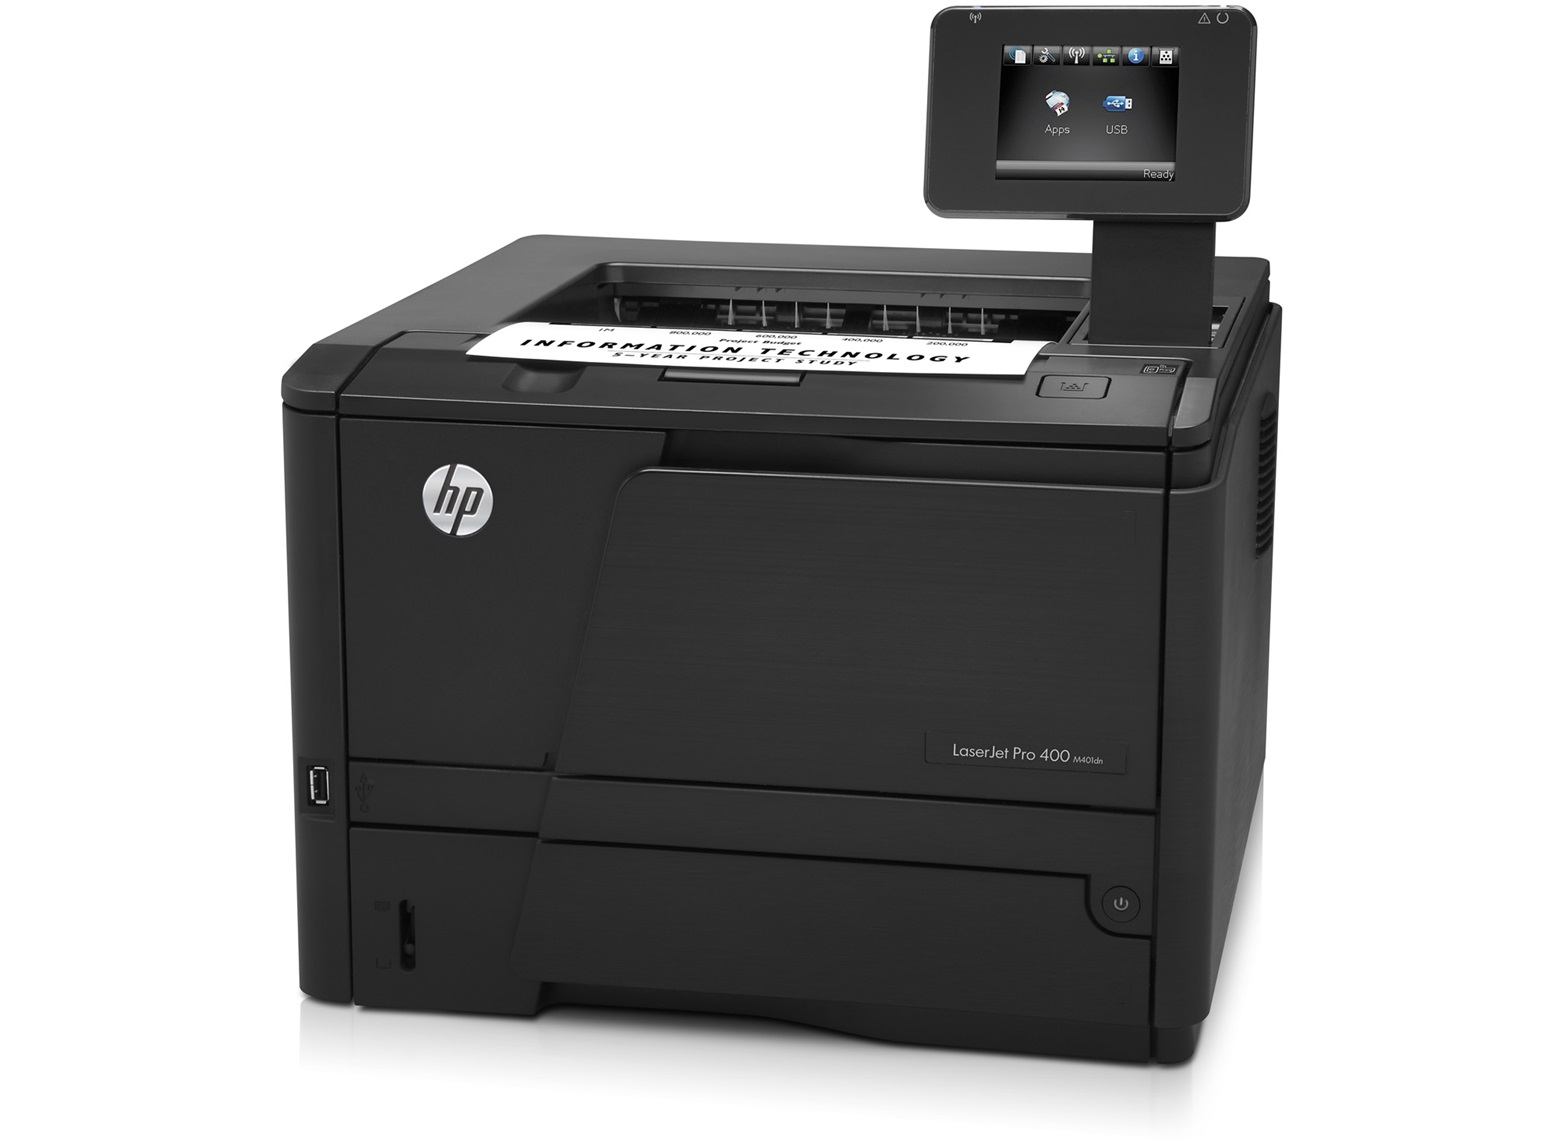 Принтер HP LaserJet Pro 400 Printer M401dn